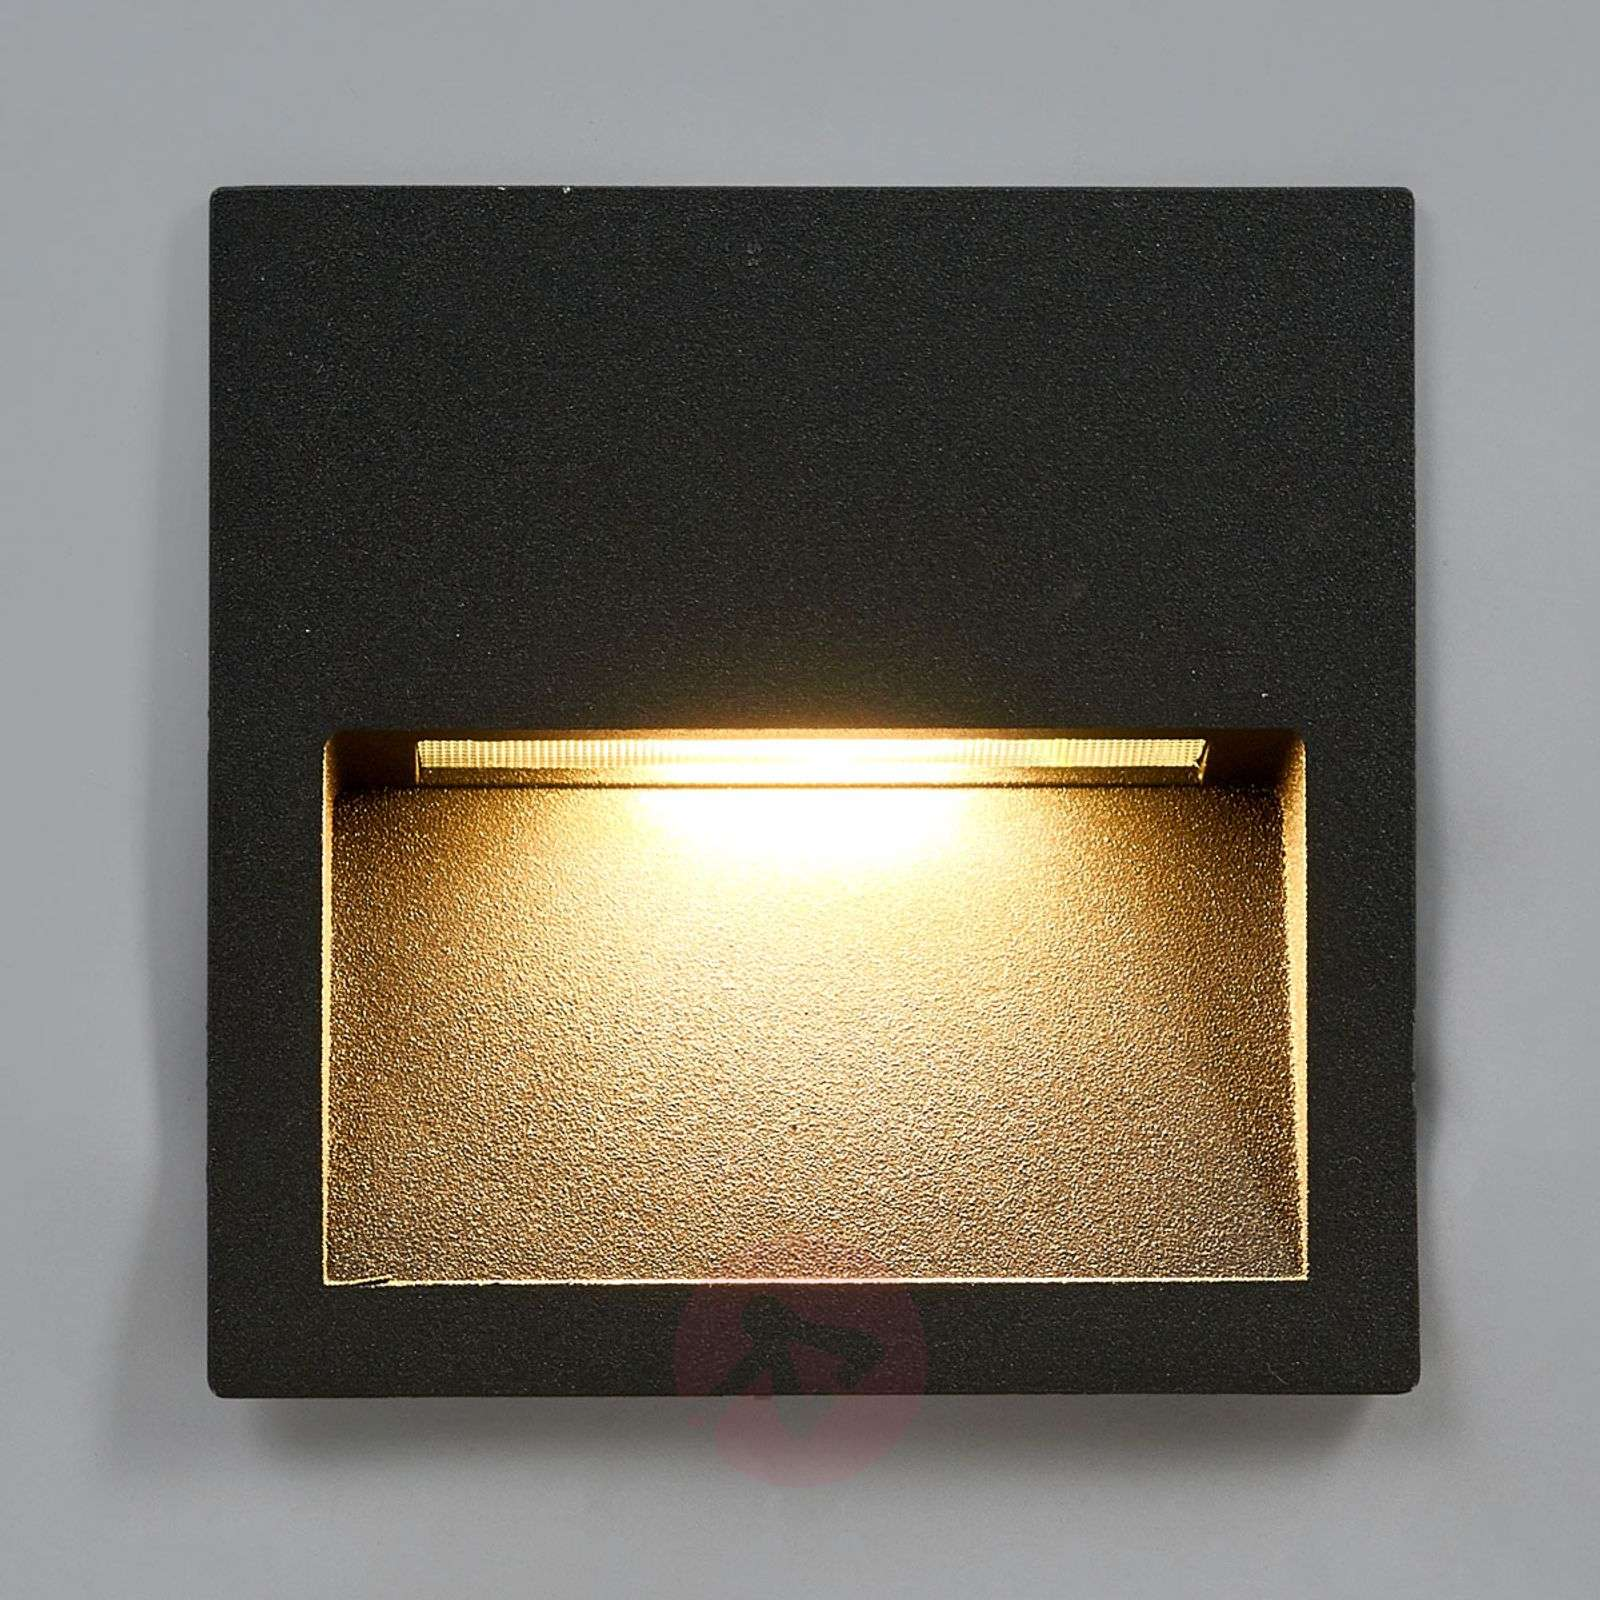 Square LED recessed wall light Loya for outdoors-9969038-02